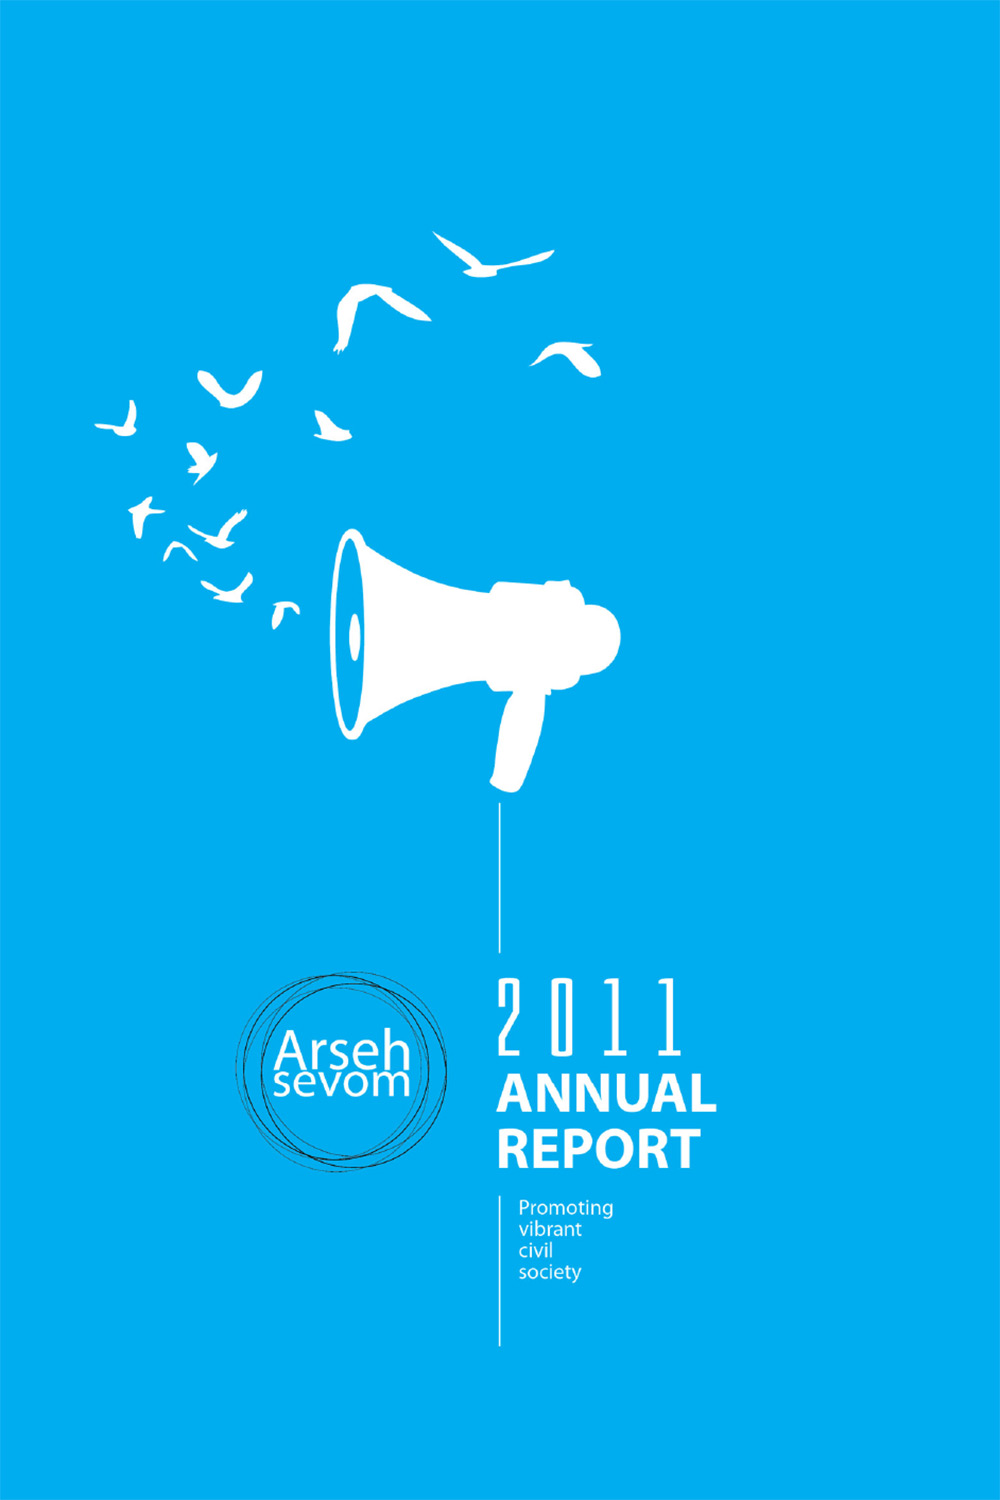 arseh-sevom-annual-report-2011